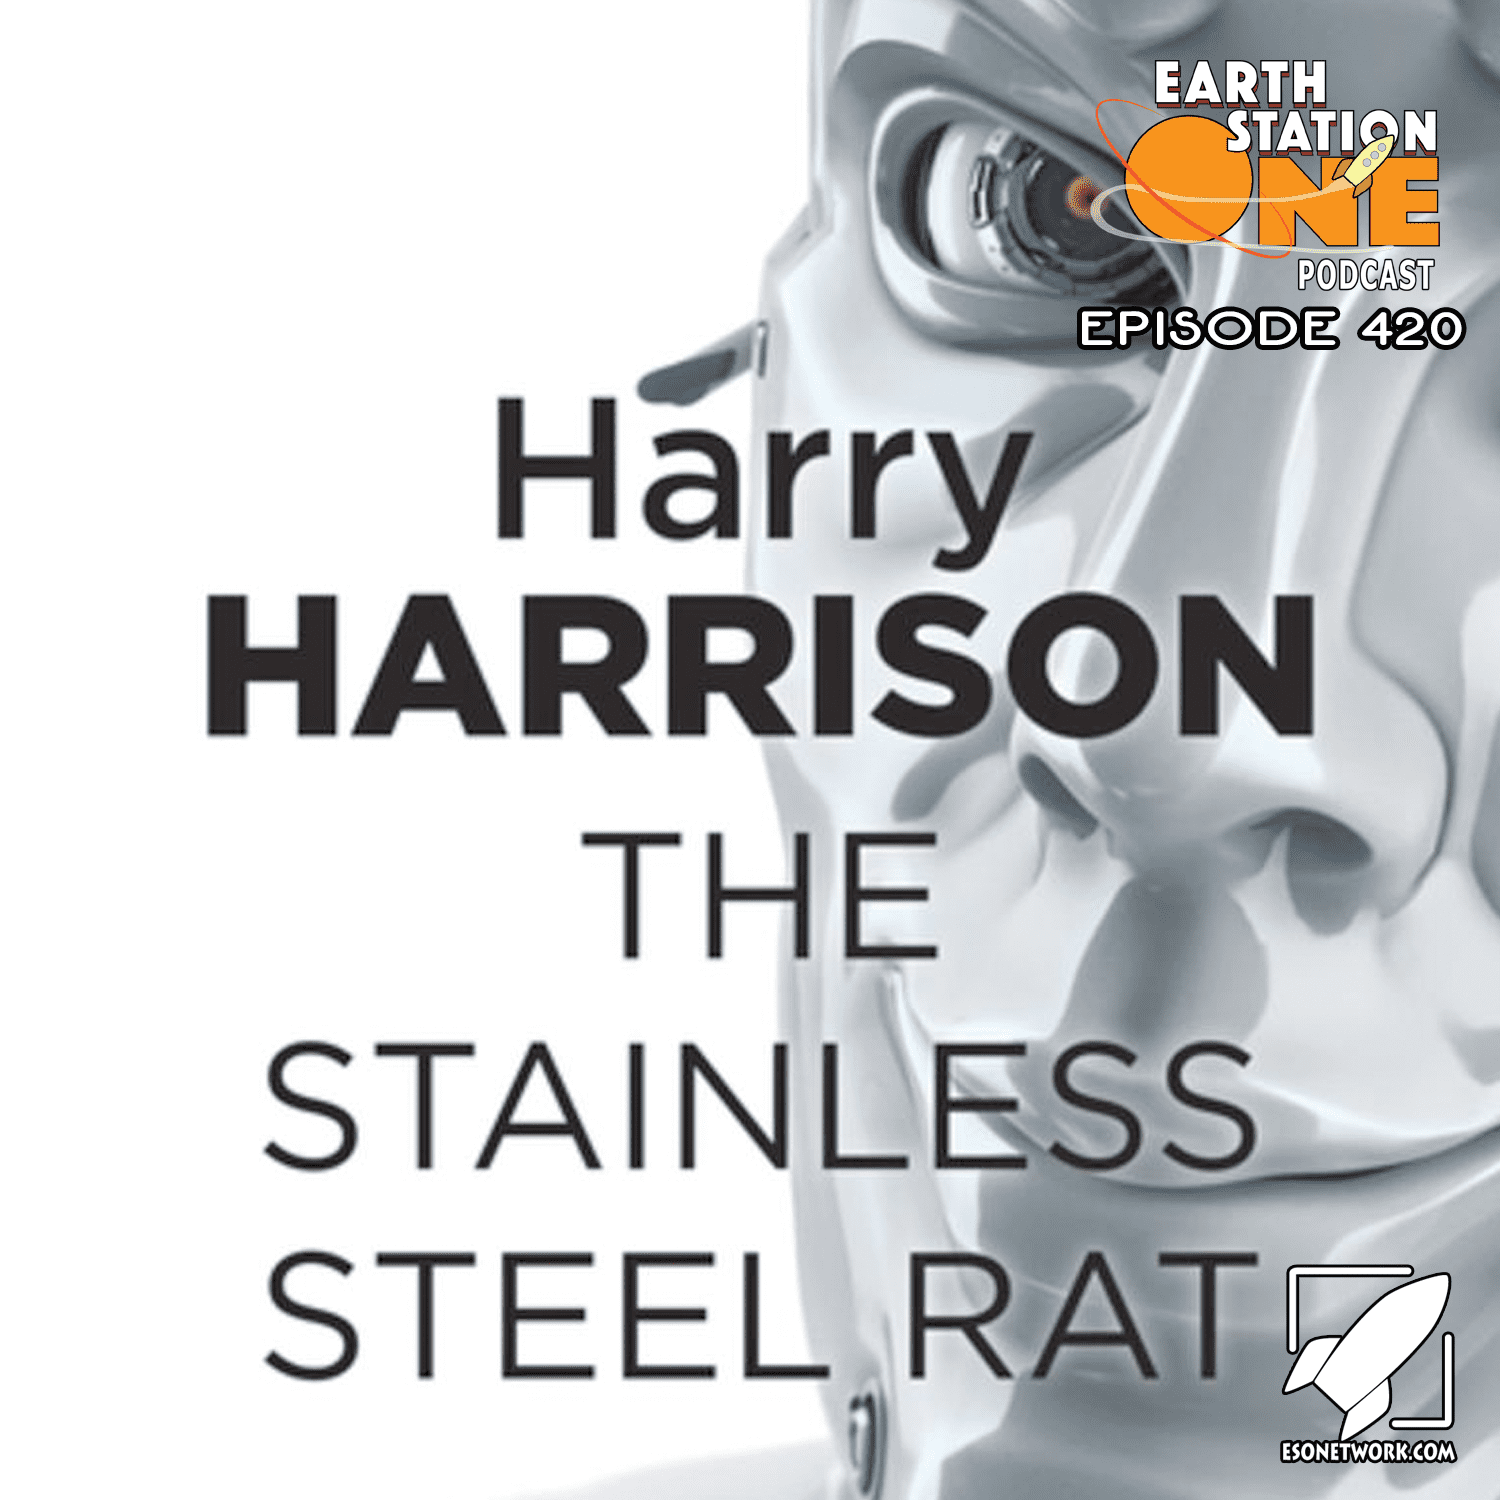 Earth Station One Podcast Ep 420 - The Earth Station One Book Club: The Stainless Steel Rat